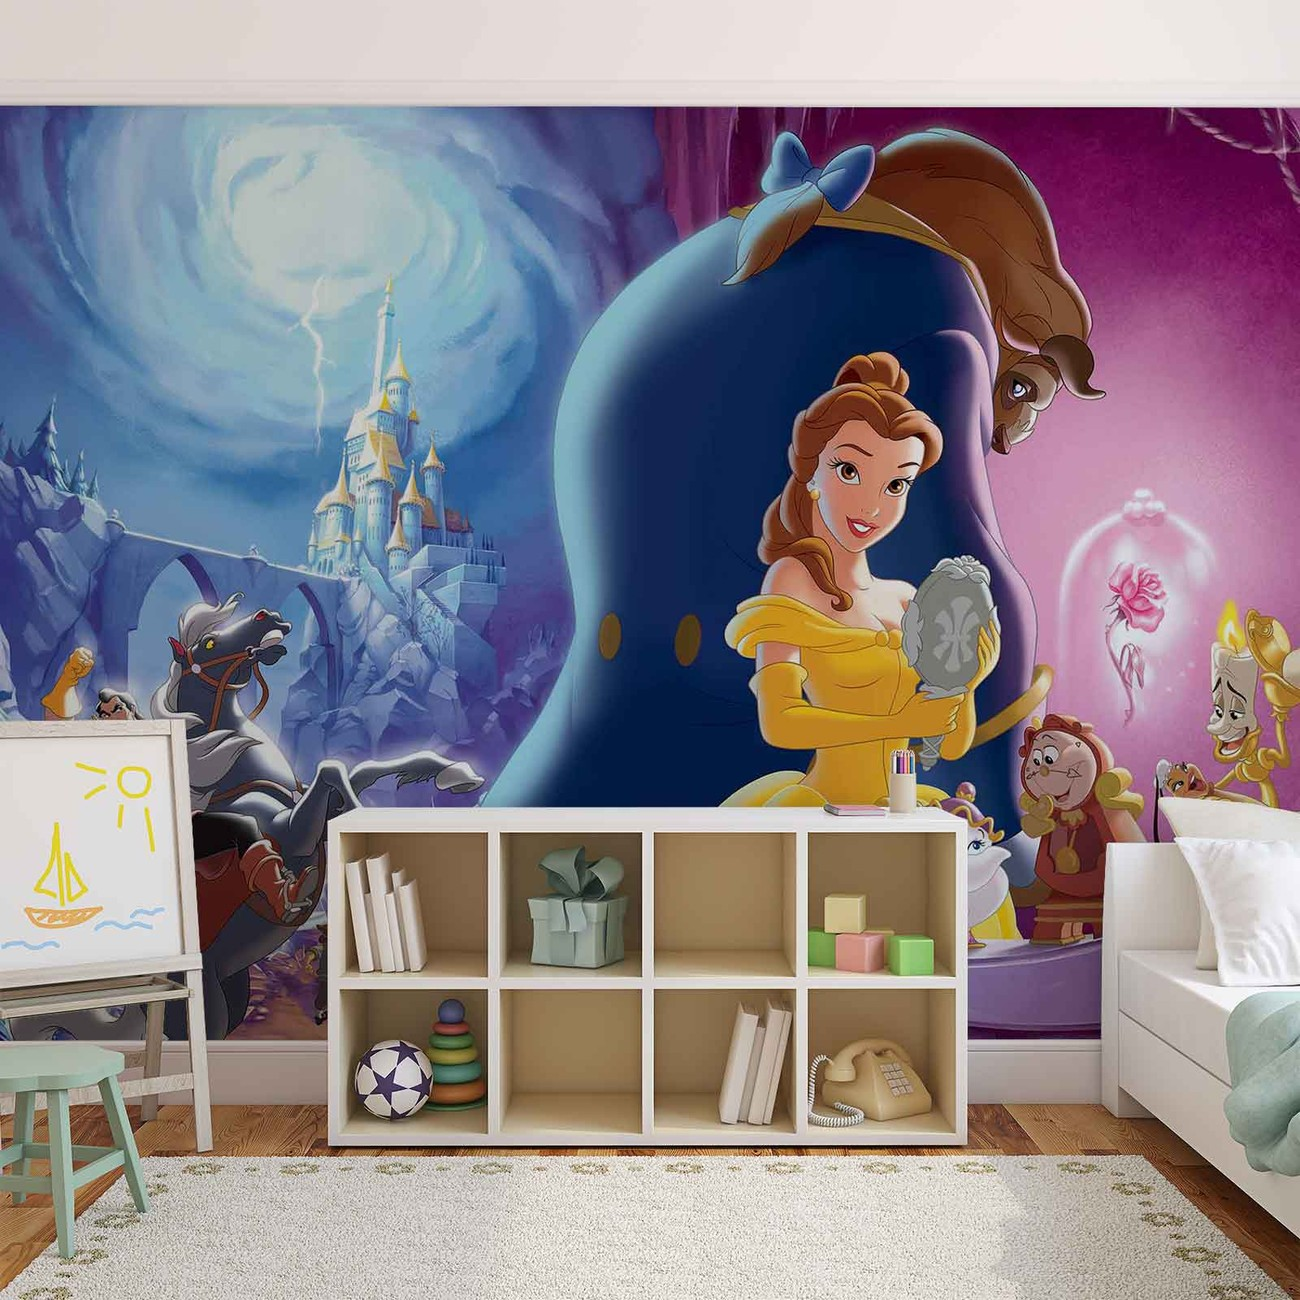 Disney princesses belle beauty beast wall paper mural for Disney princess mural asda